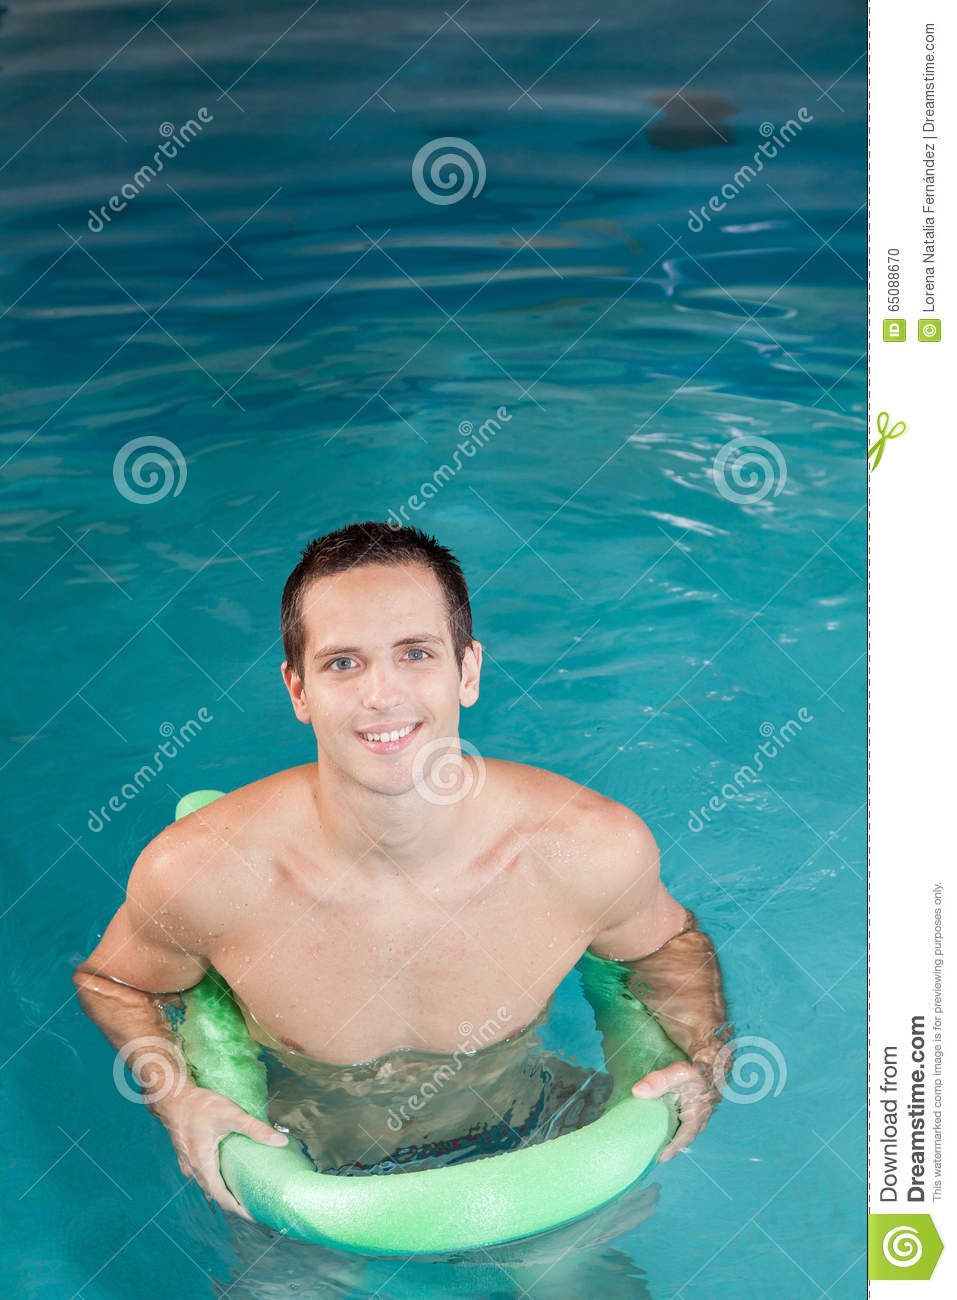 Guy playing inside the pool